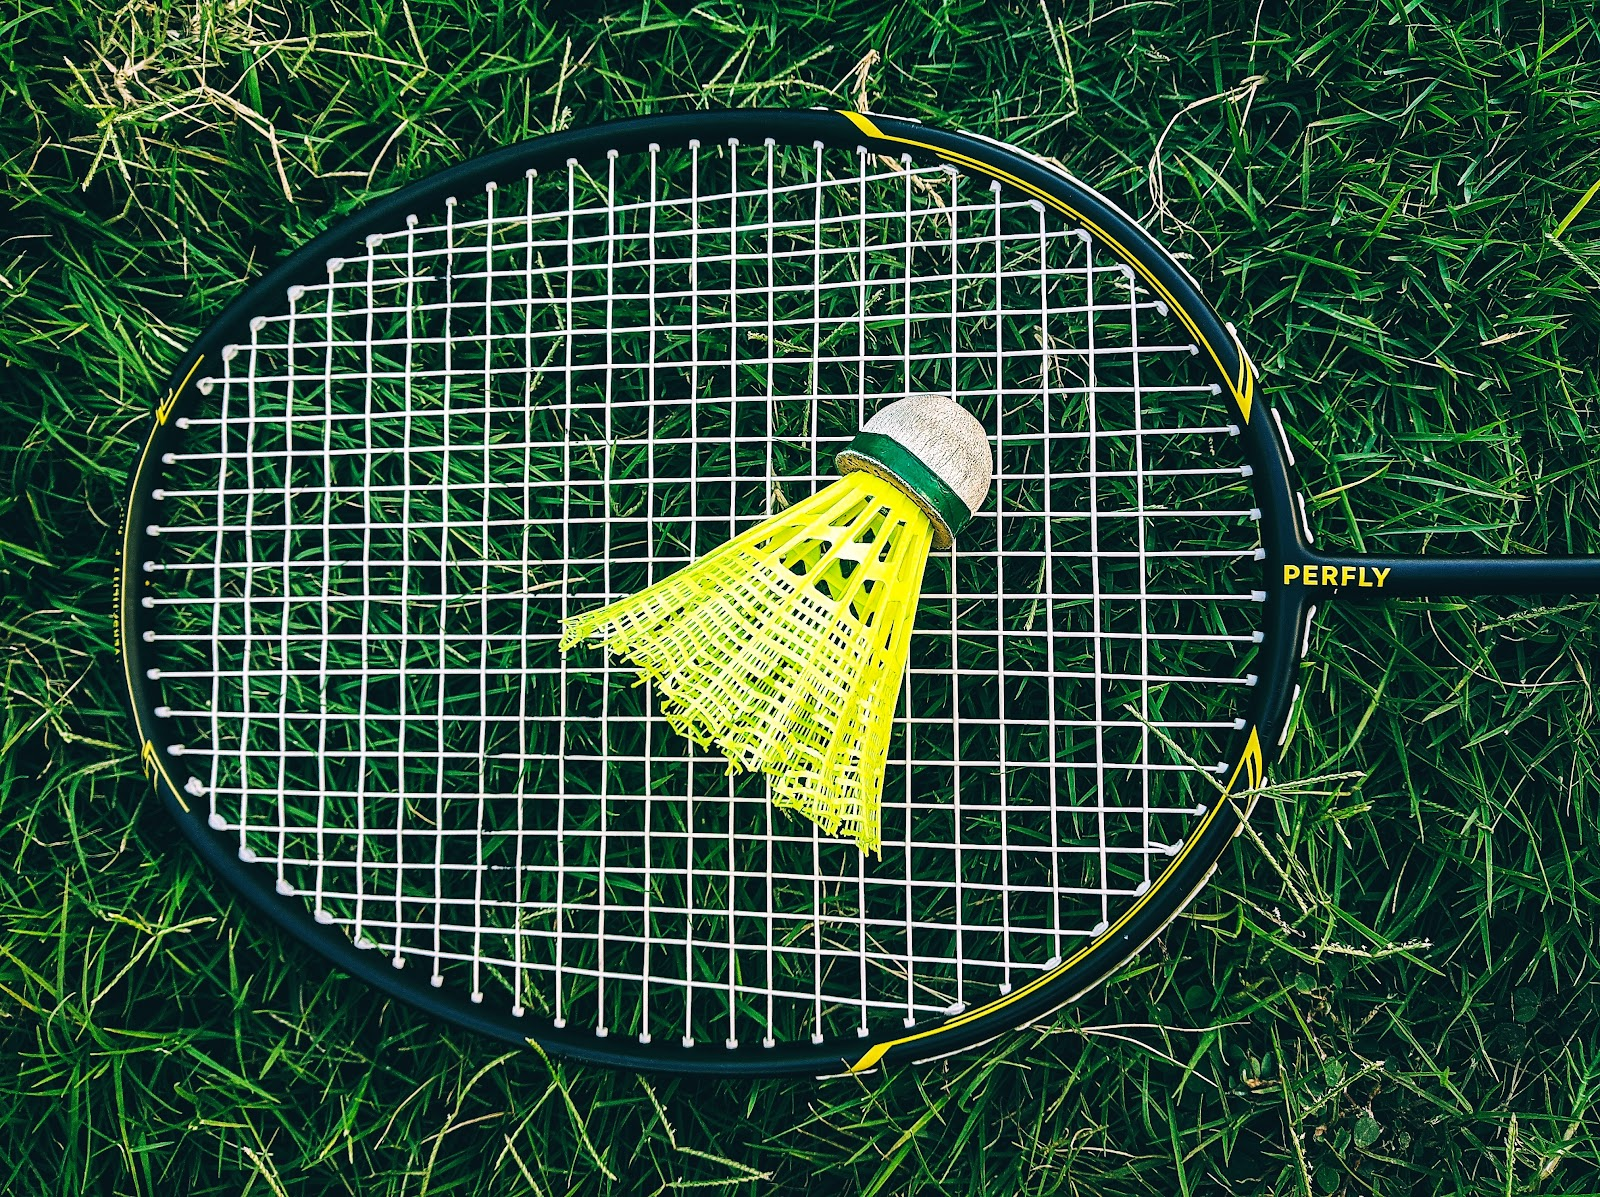 A shuttlecock rests on badminton racket strings in the grass.